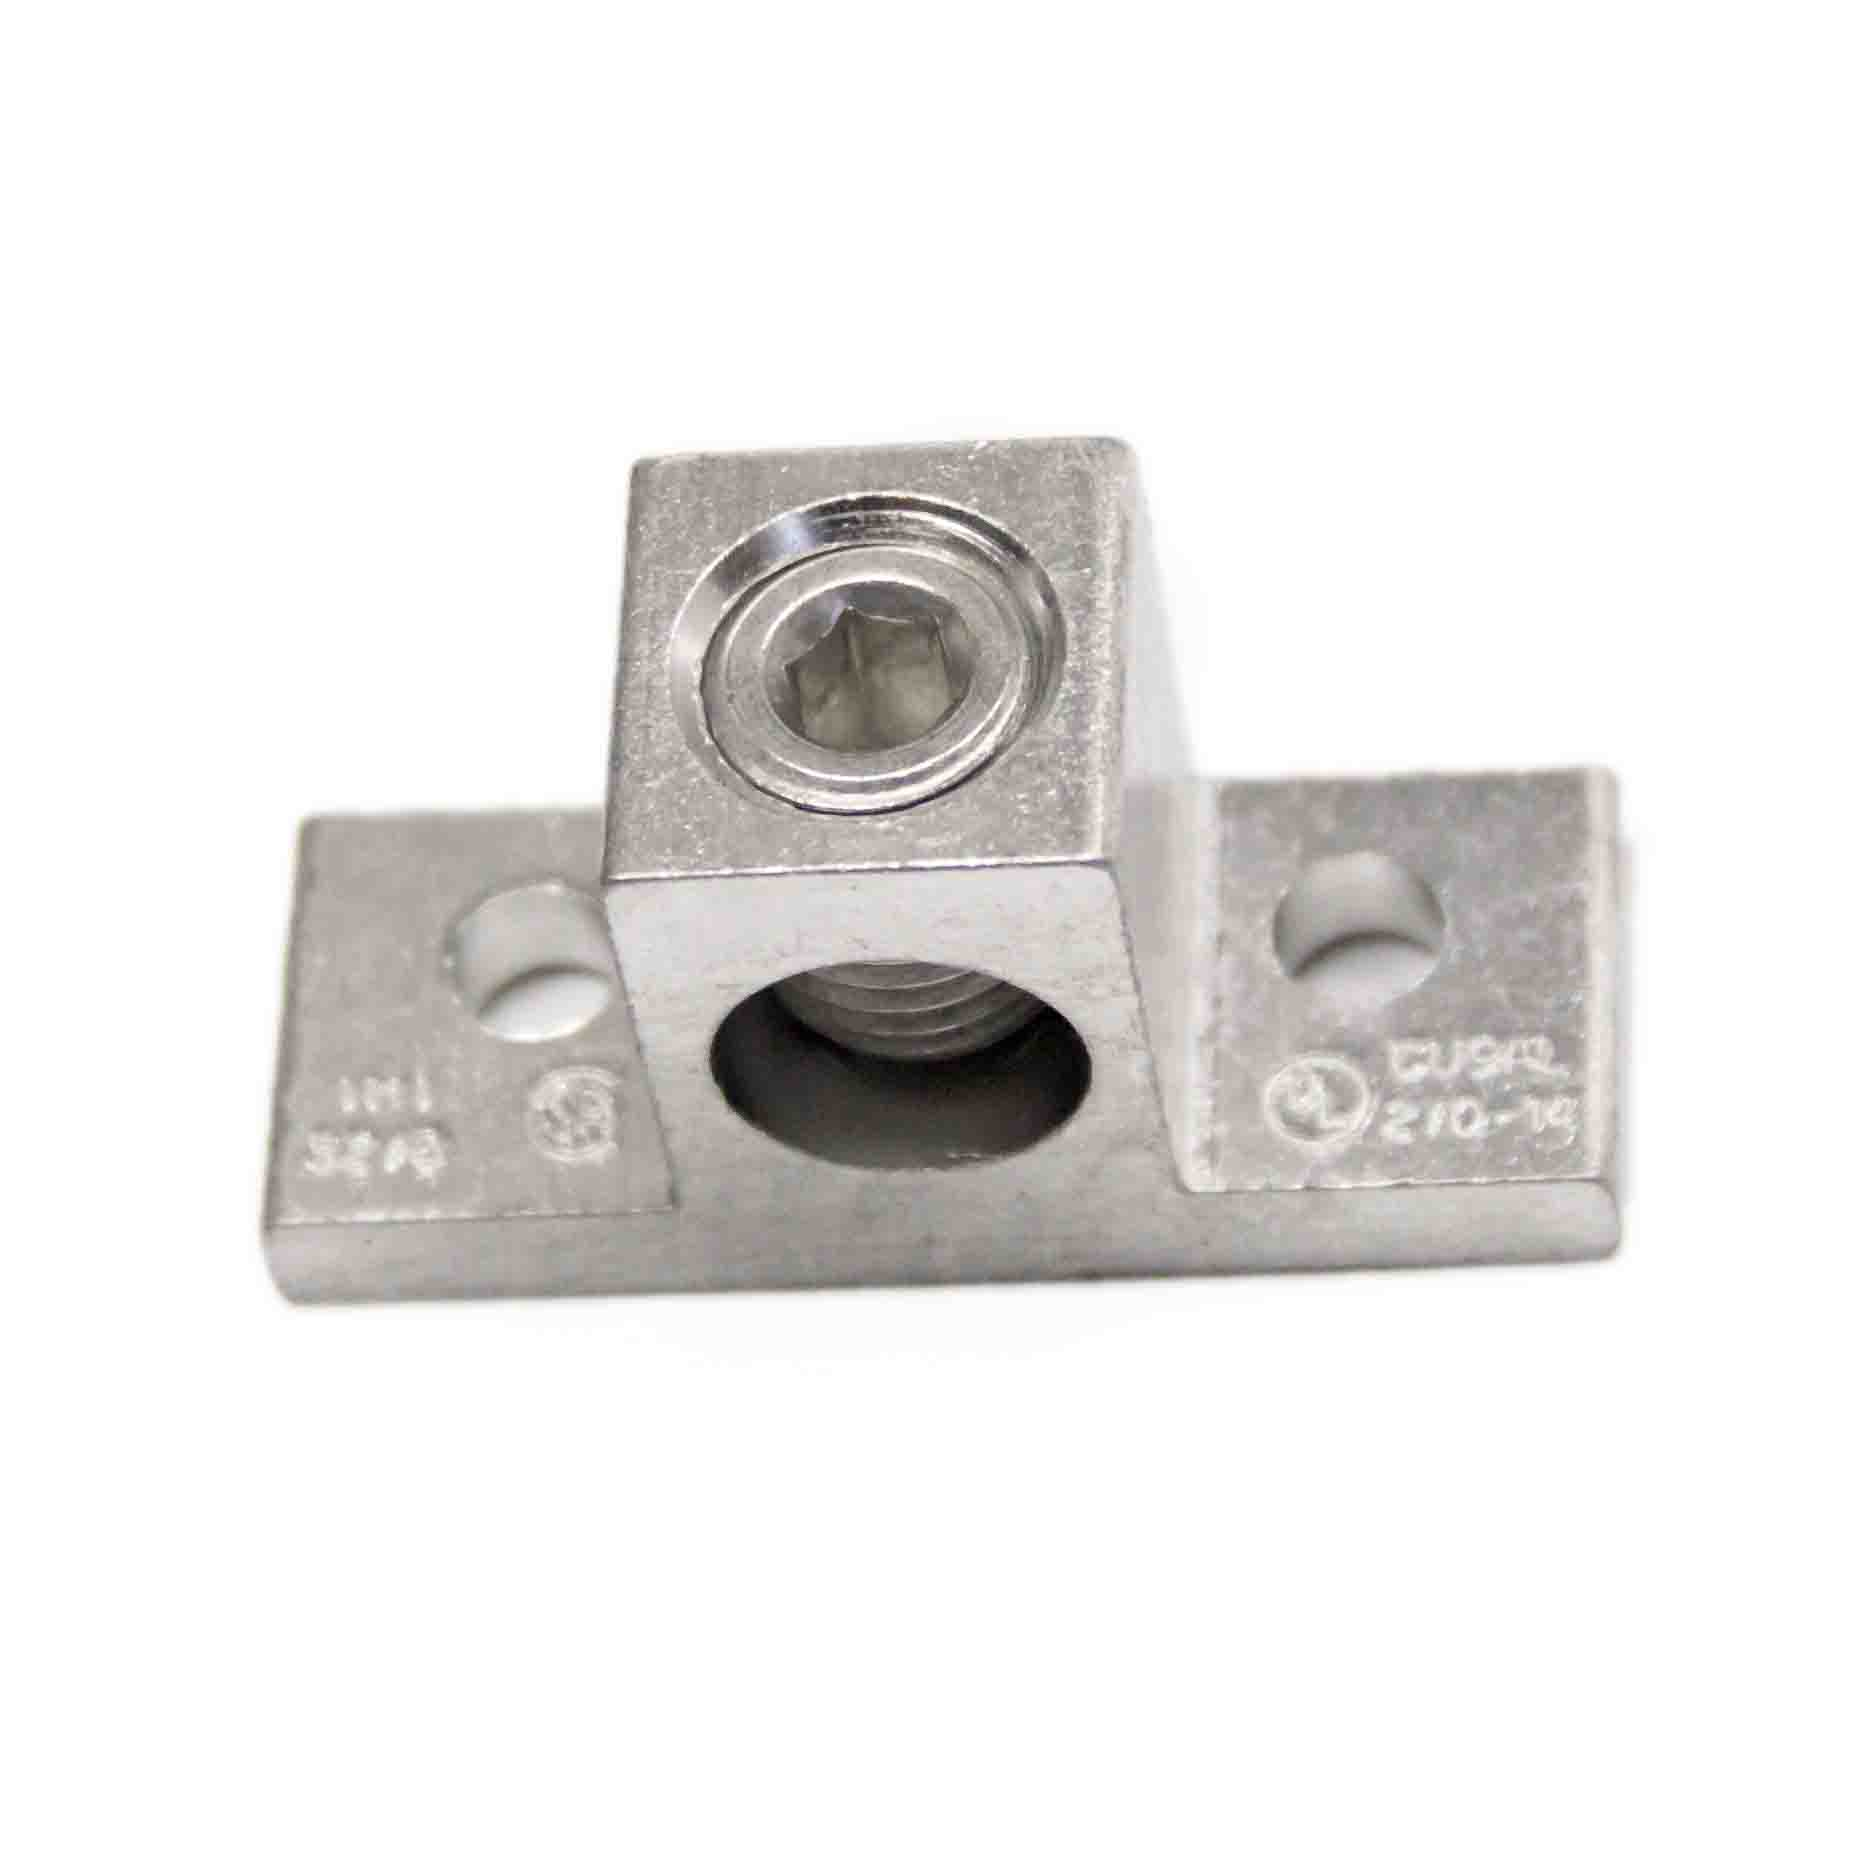 T2/0 2/0 AWG Single wire lug, 2/0AWG - 14AWG